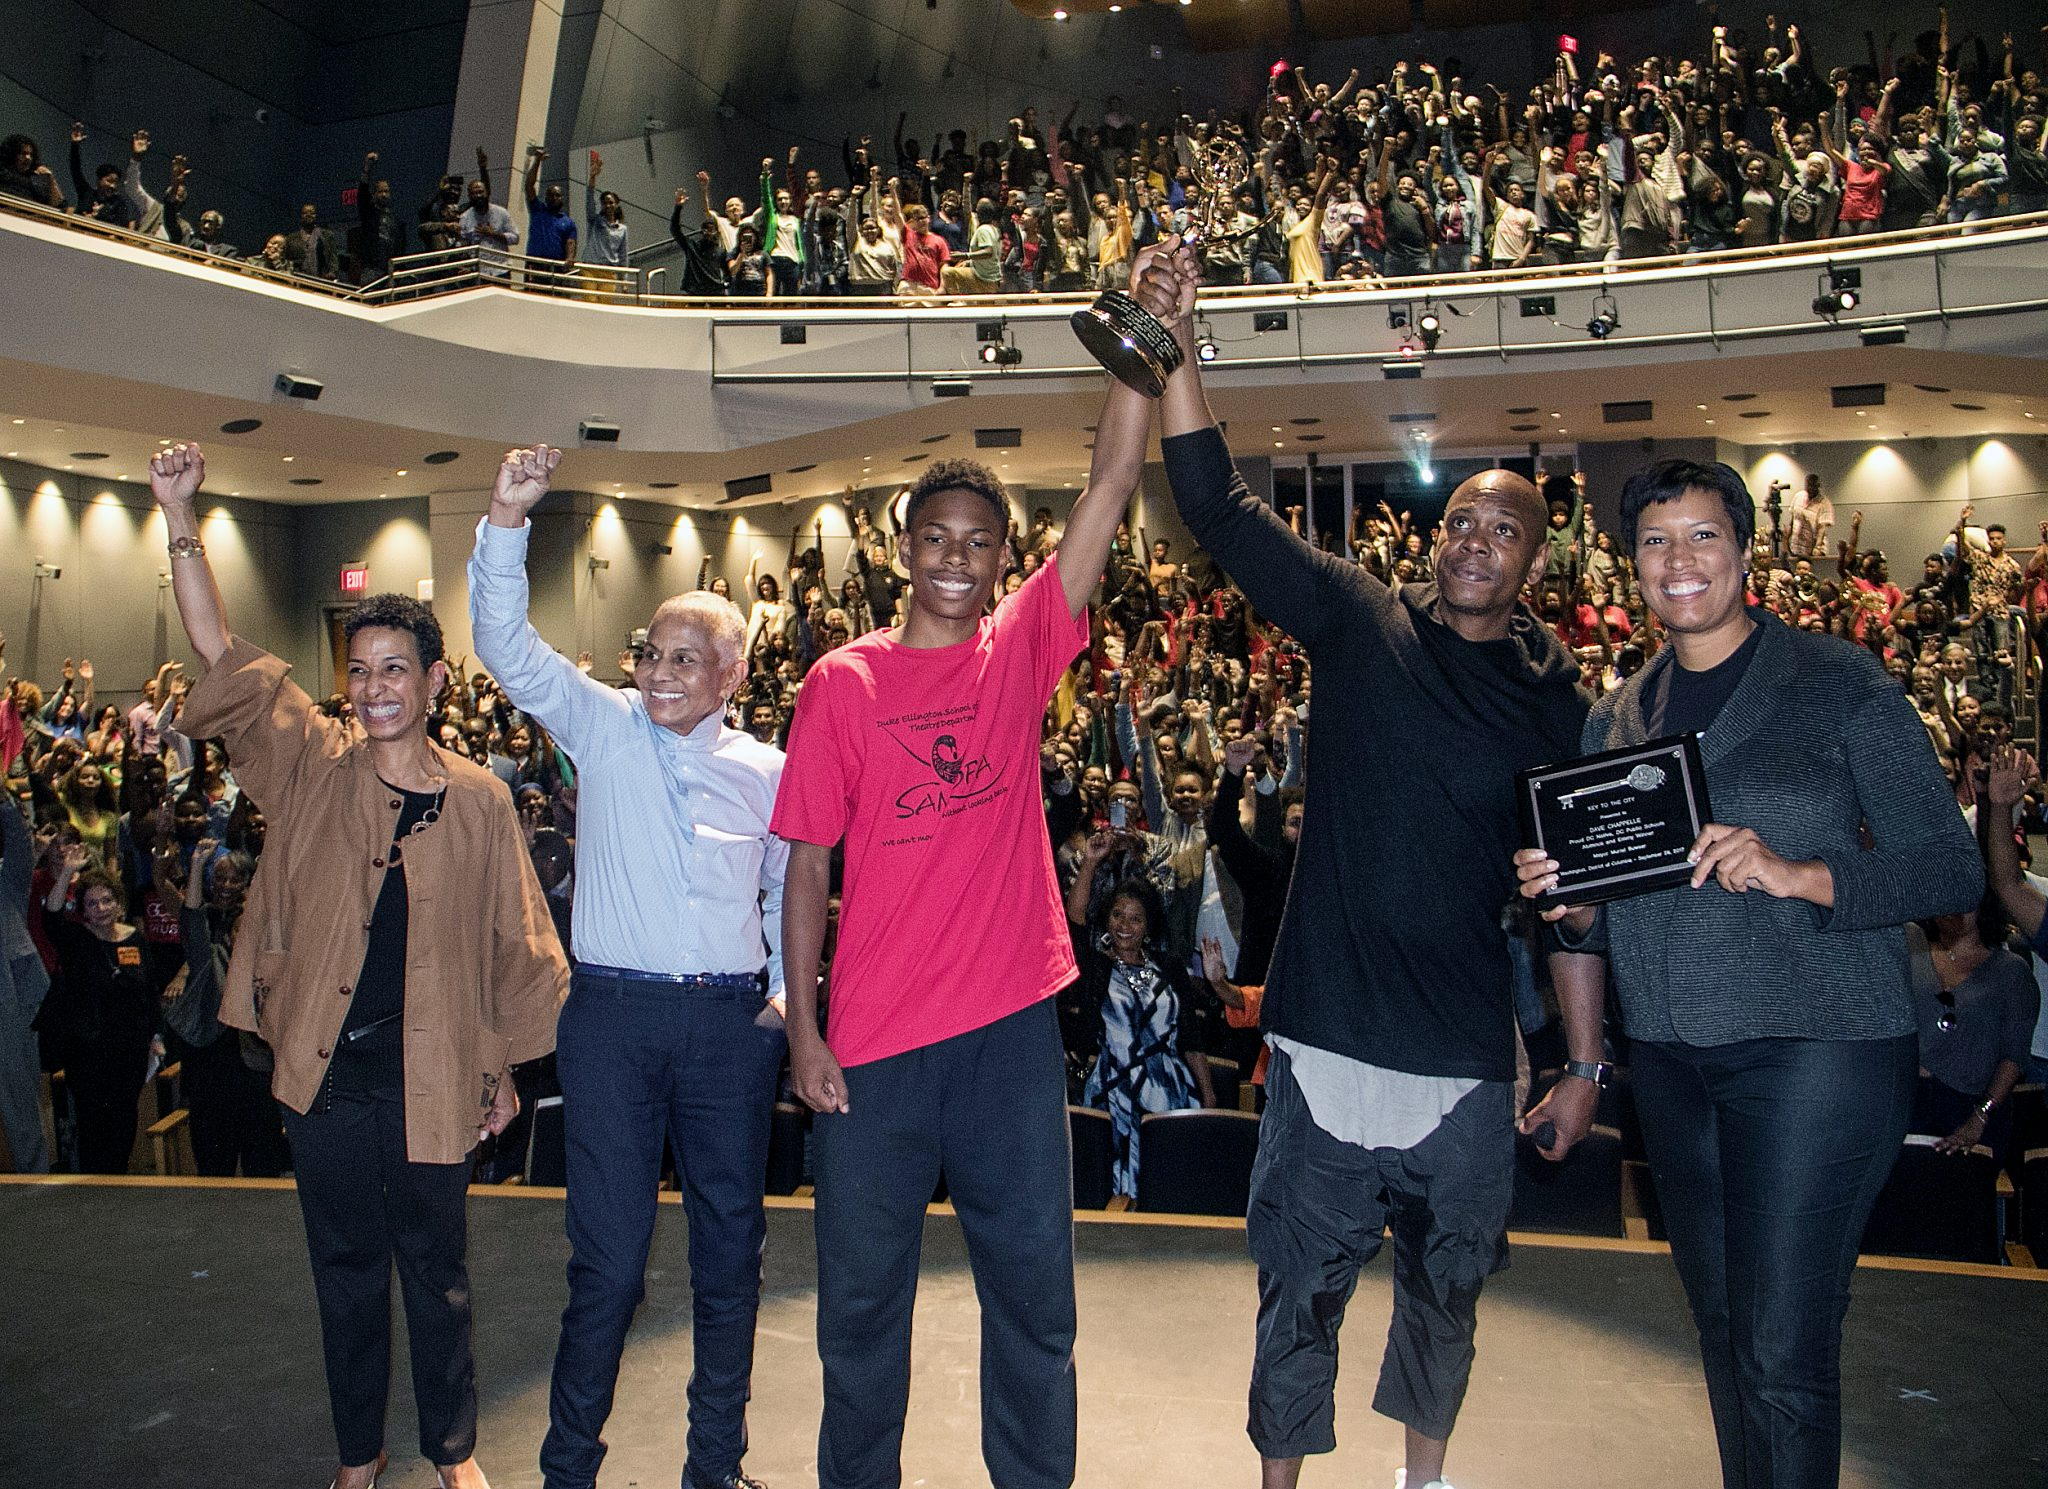 """From left: Duke Ellington School of the Arts Chief Executive Officer Tia Powel Harris, Peggy Cooper Cafritz, co-founder of the Duke Ellington School of the Arts and former president of D.C.'s school board, Ellington freshman Makeal Exum, comedian Dave Chappelle and D.C. Mayor Muriel Bowser lift hands in celebration at the Northwest school on Sept. 29, after Chappelle was presented with the Key to the City and gifted the school with an Emmy he received for an appearance on """"Saturday Night Live"""" earlier this year. (Shevry Lassiter/The Washington Informer)"""